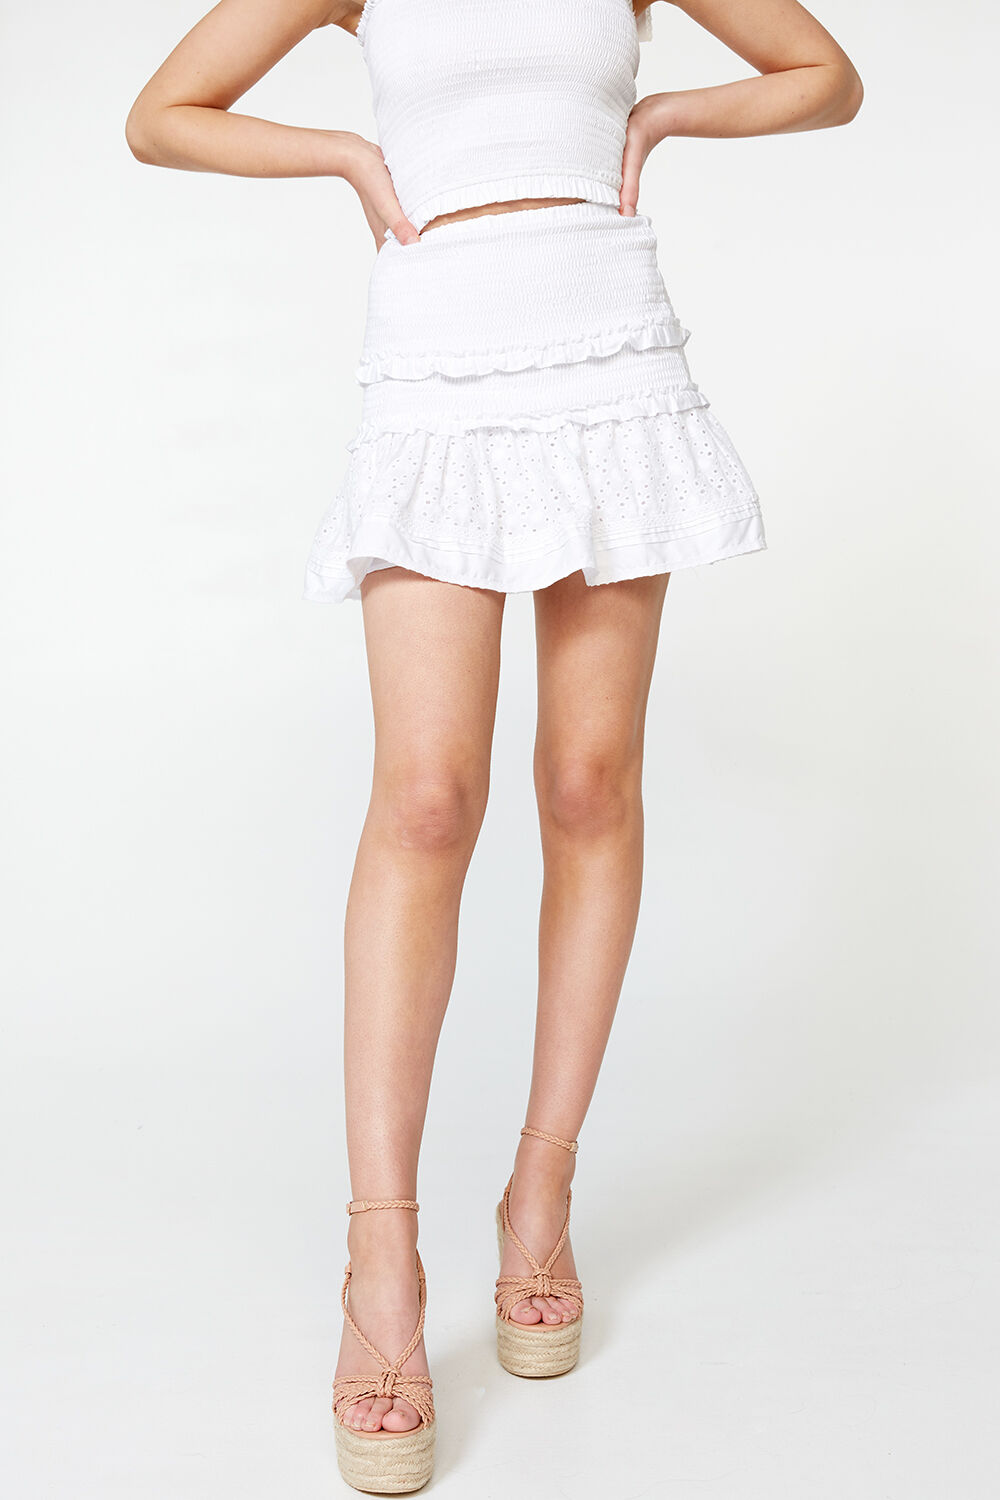 LOLITA SHIRRED SKIRT in colour CLOUD DANCER